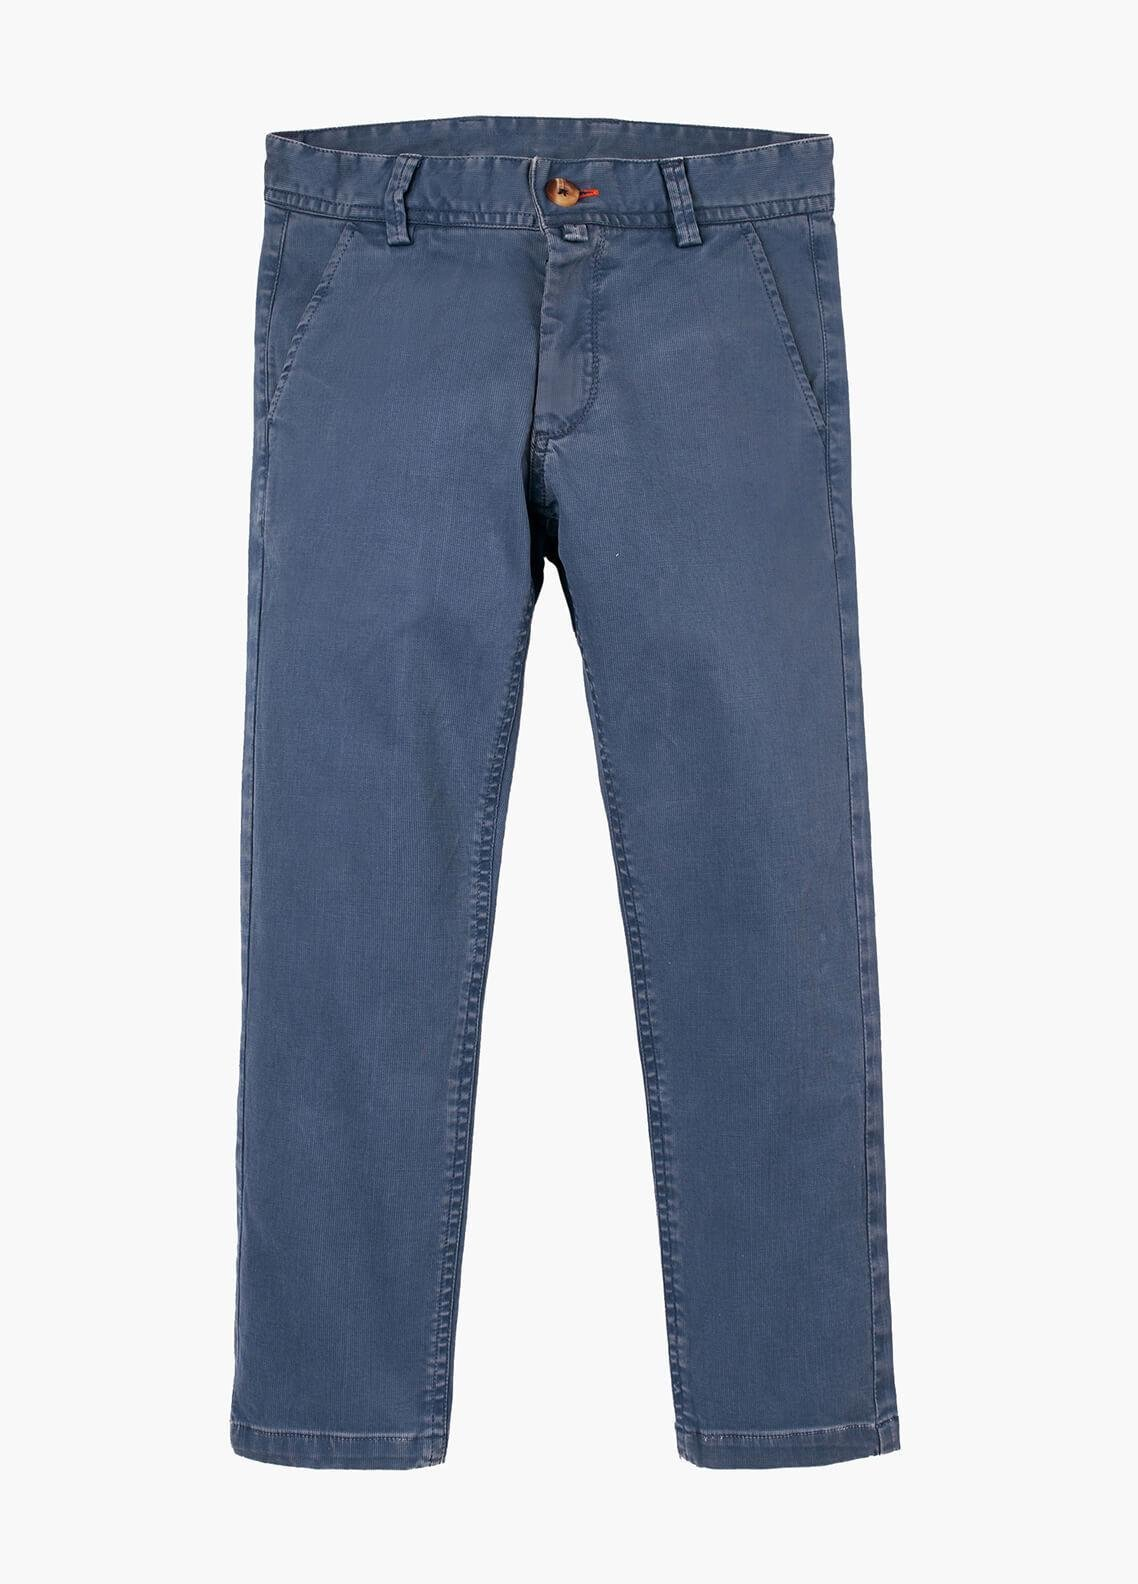 Brumano Cotton Casual Trousers for Boys - Blue BRM-555